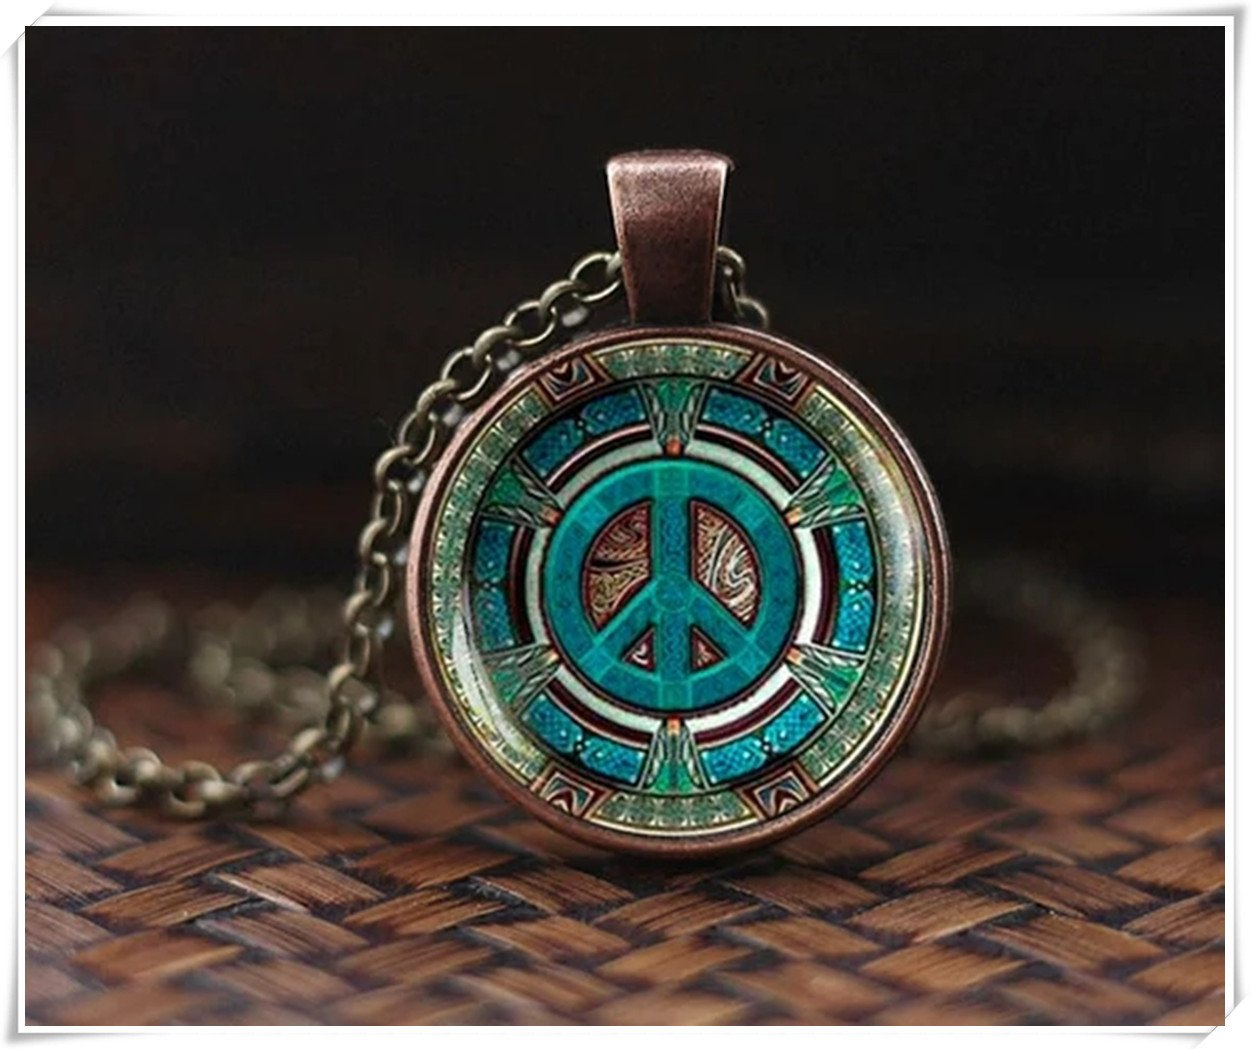 no see long time Hippie necklace, Hippie pendant, Hippie jewelry, Peace sign necklace,peace pendant, Hippie men's jewelry